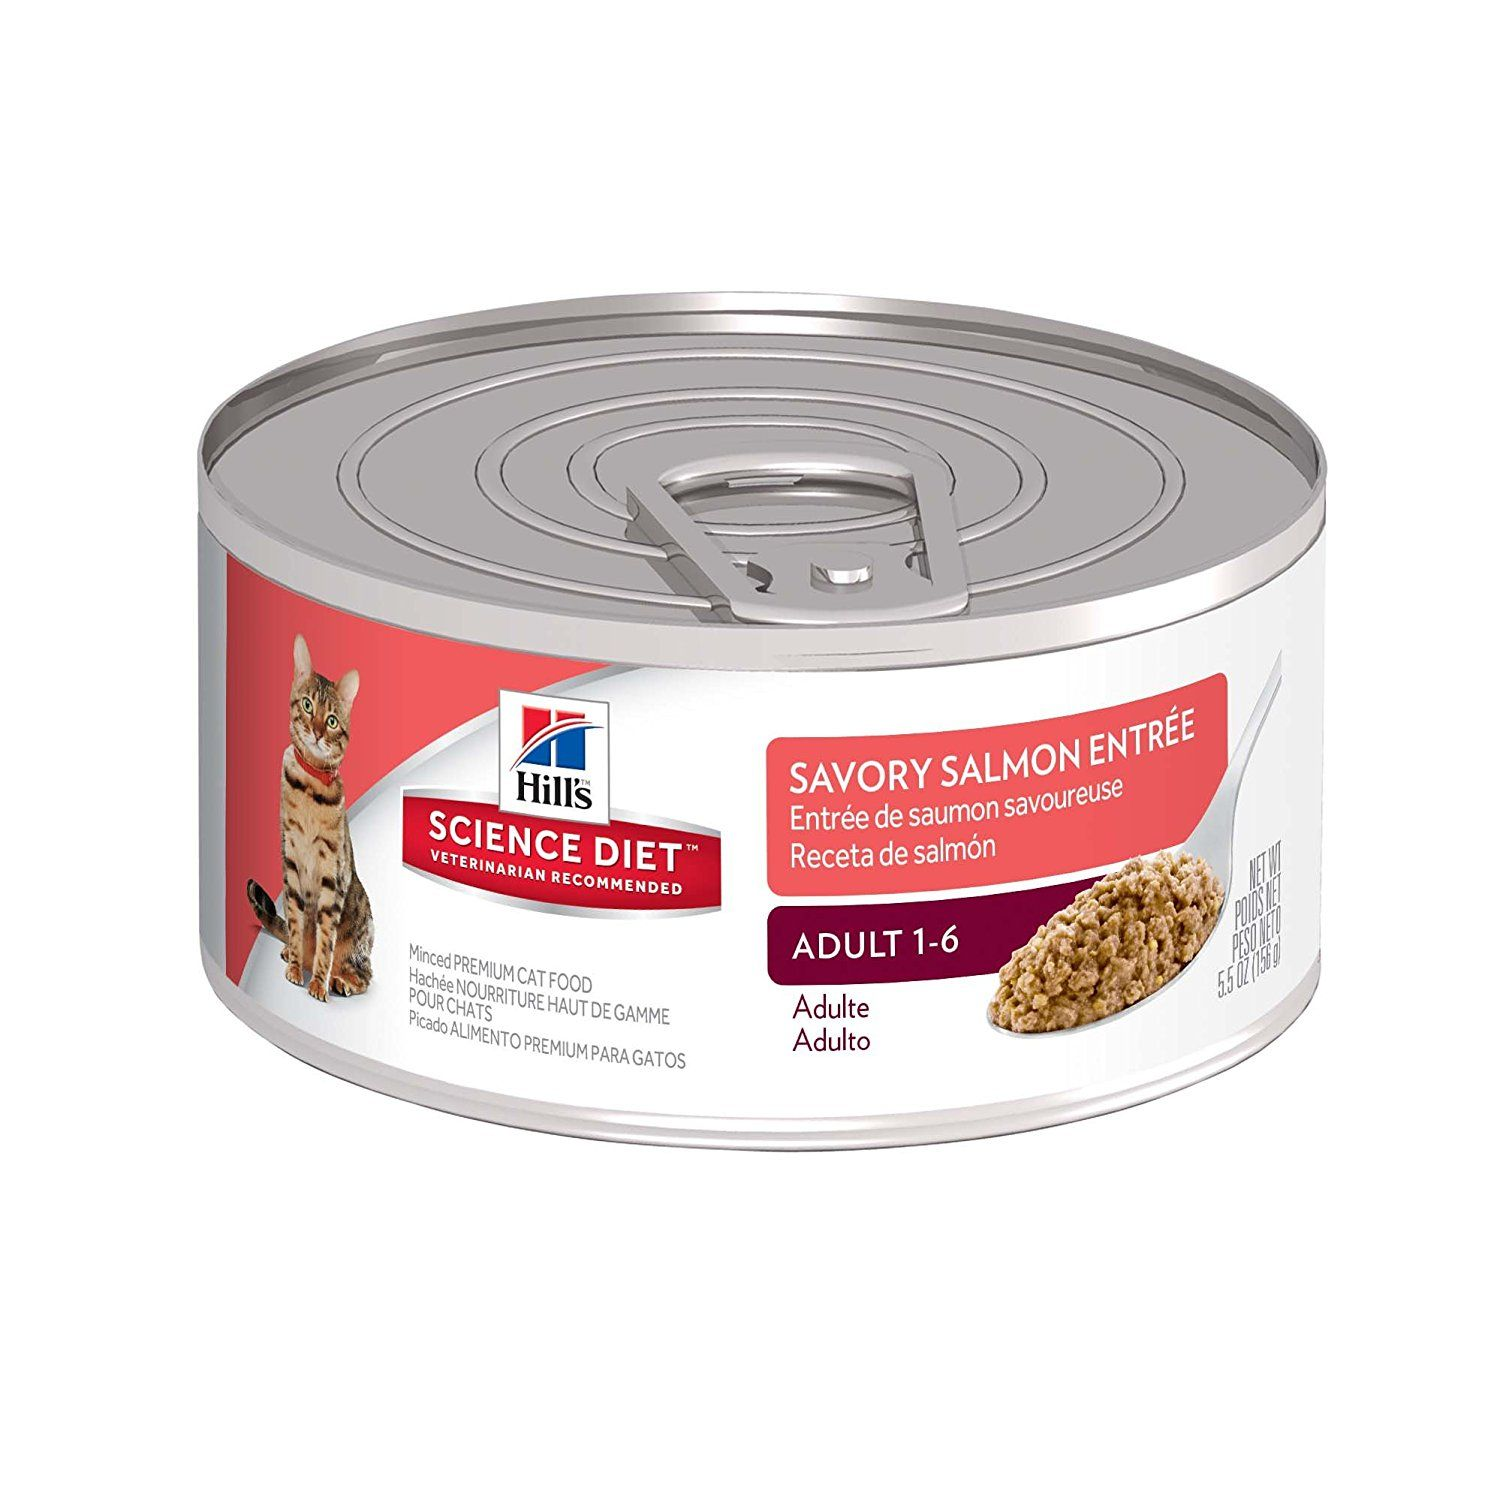 Hills science diet adult minced canned cat food 24pack